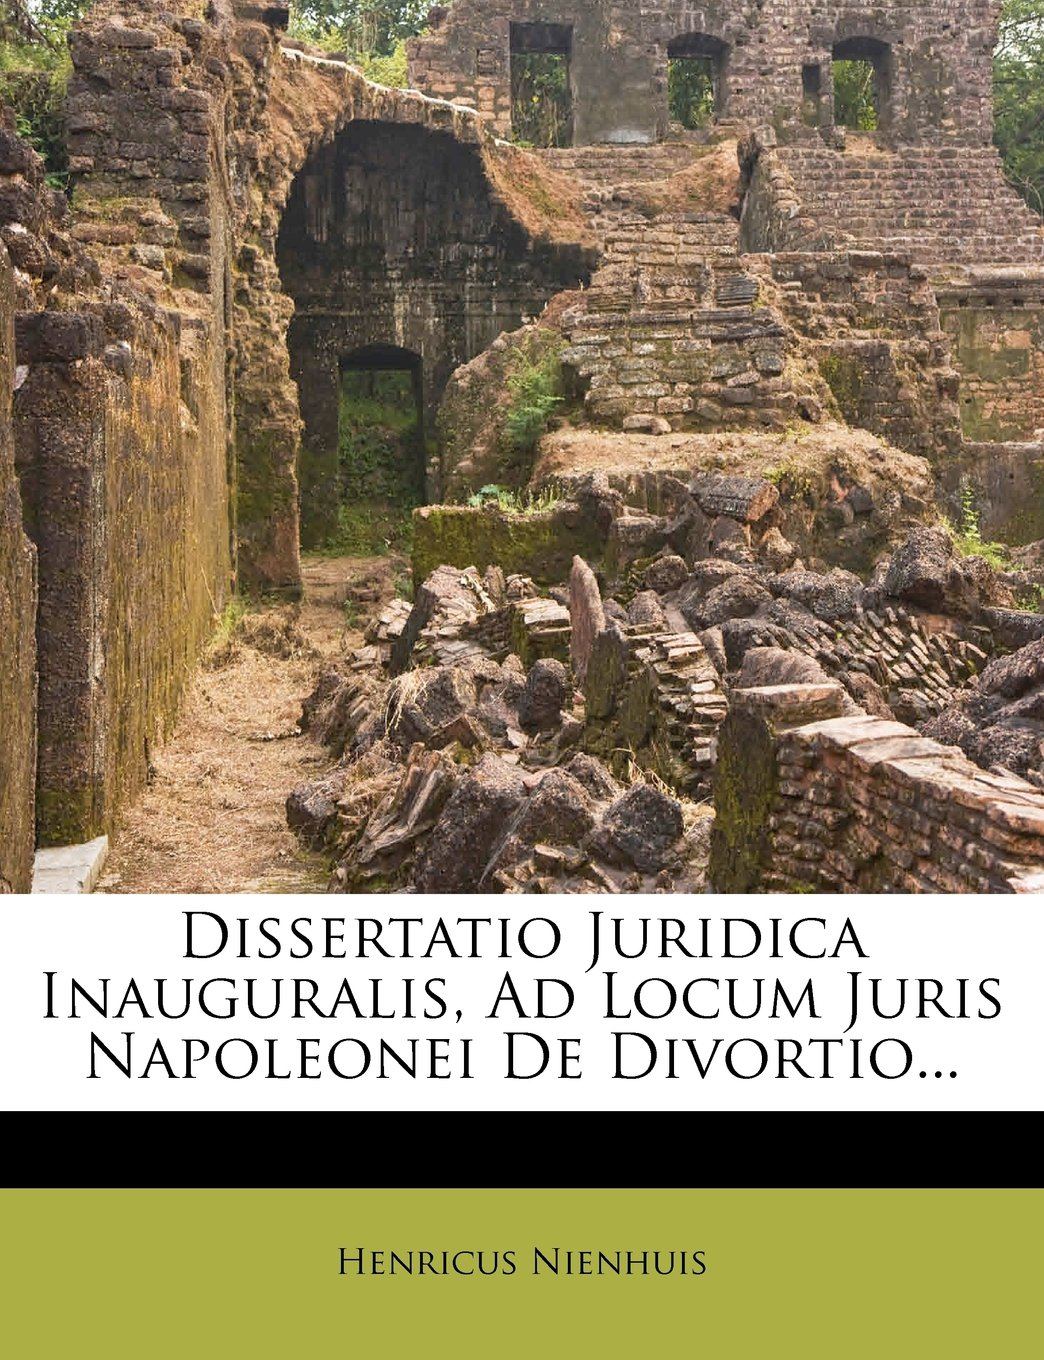 Download Dissertatio Juridica Inauguralis, Ad Locum Juris Napoleonei de Divortio... (Latin Edition) pdf